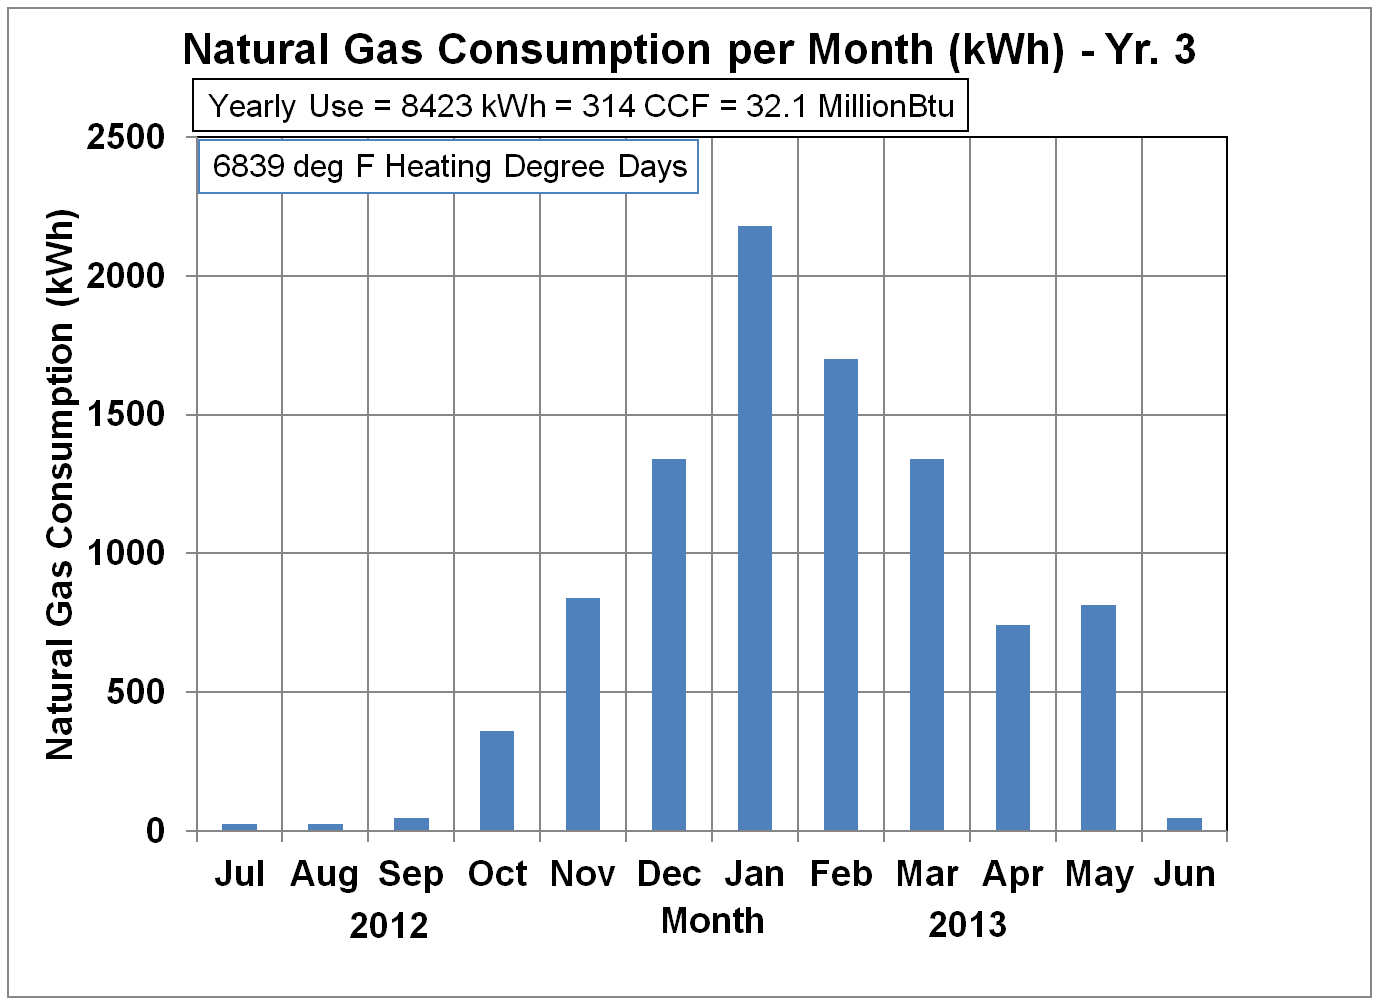 Natural gas usage in kWh - Yr. 3